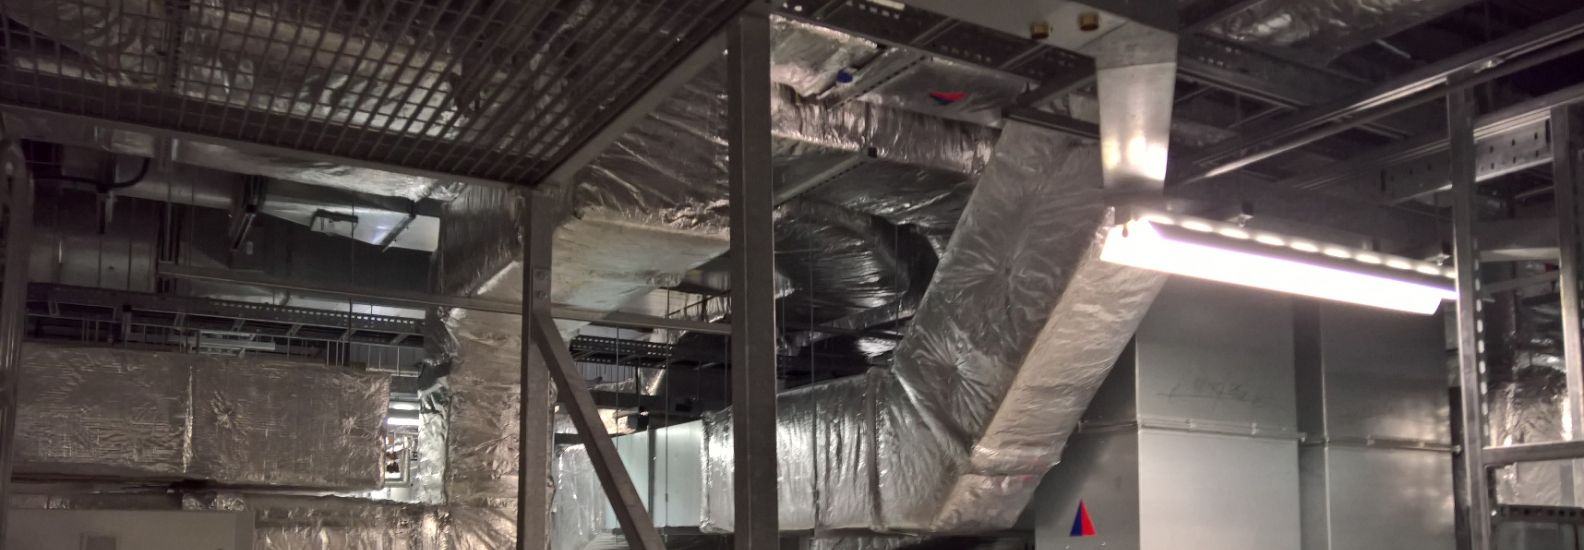 Duct Cleaning Birmingham in 2020 Duct cleaning, Cleaning